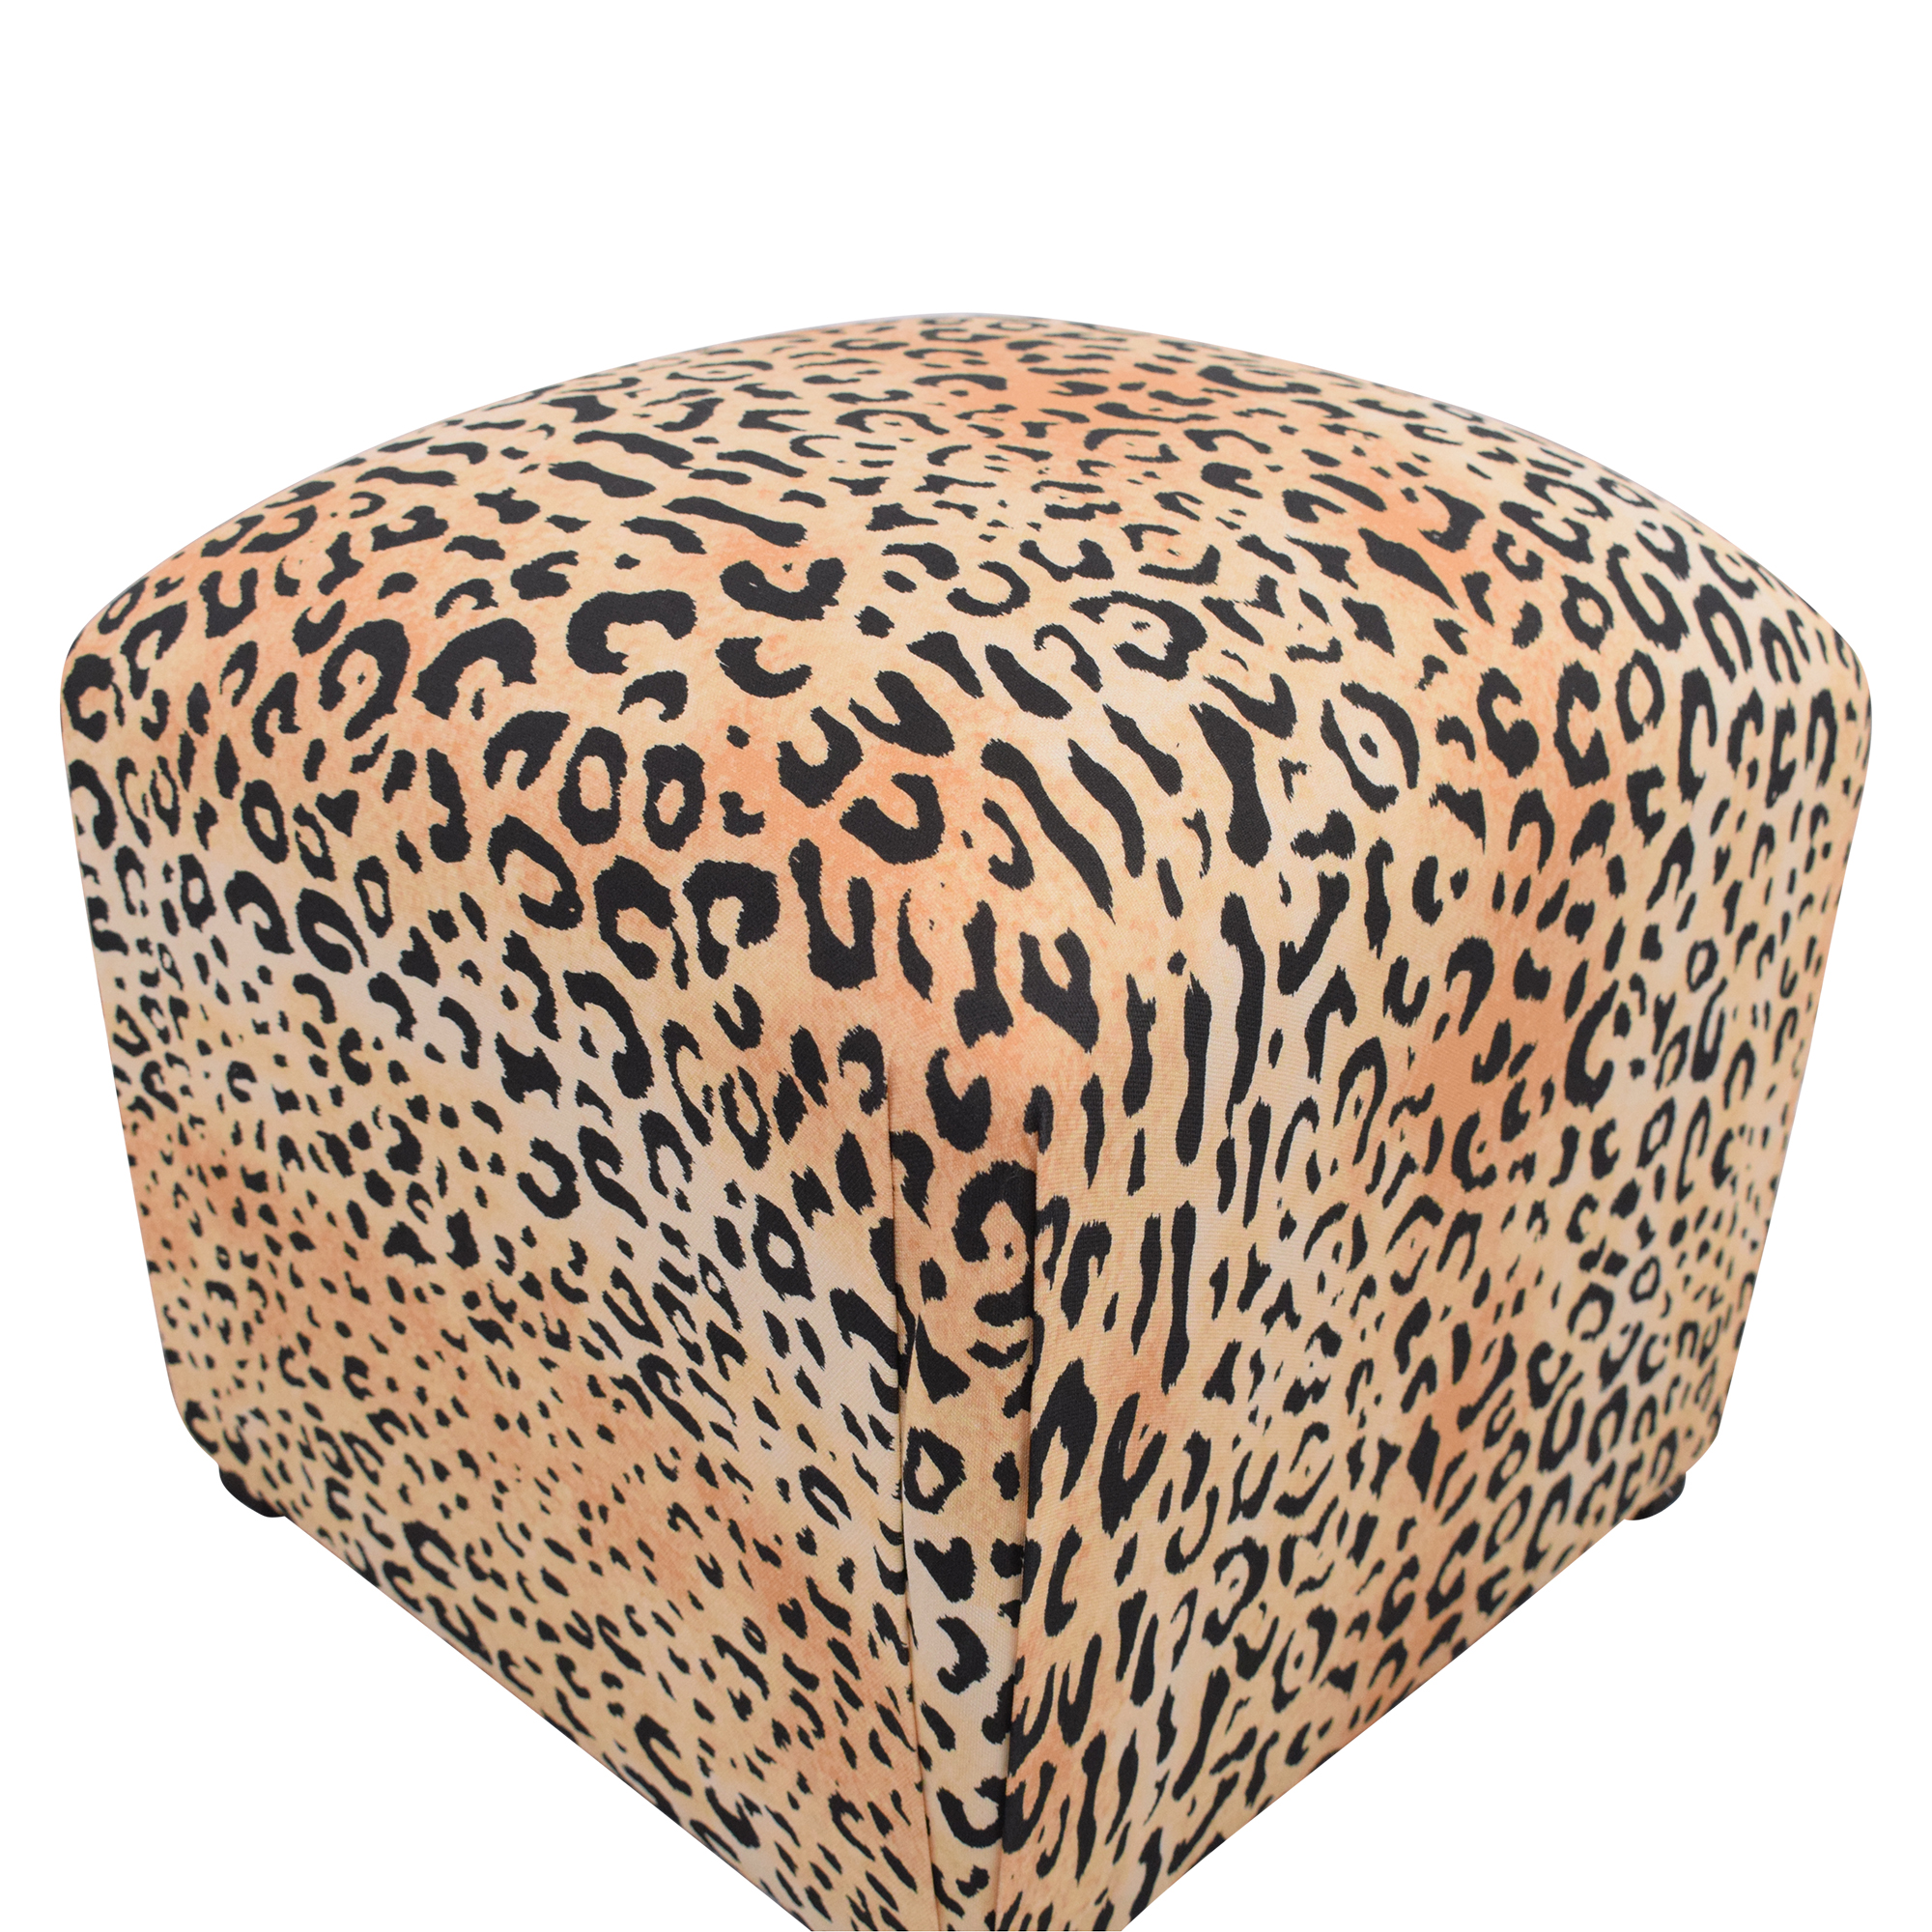 The Inside The Inside Deco Ottoman brown & black